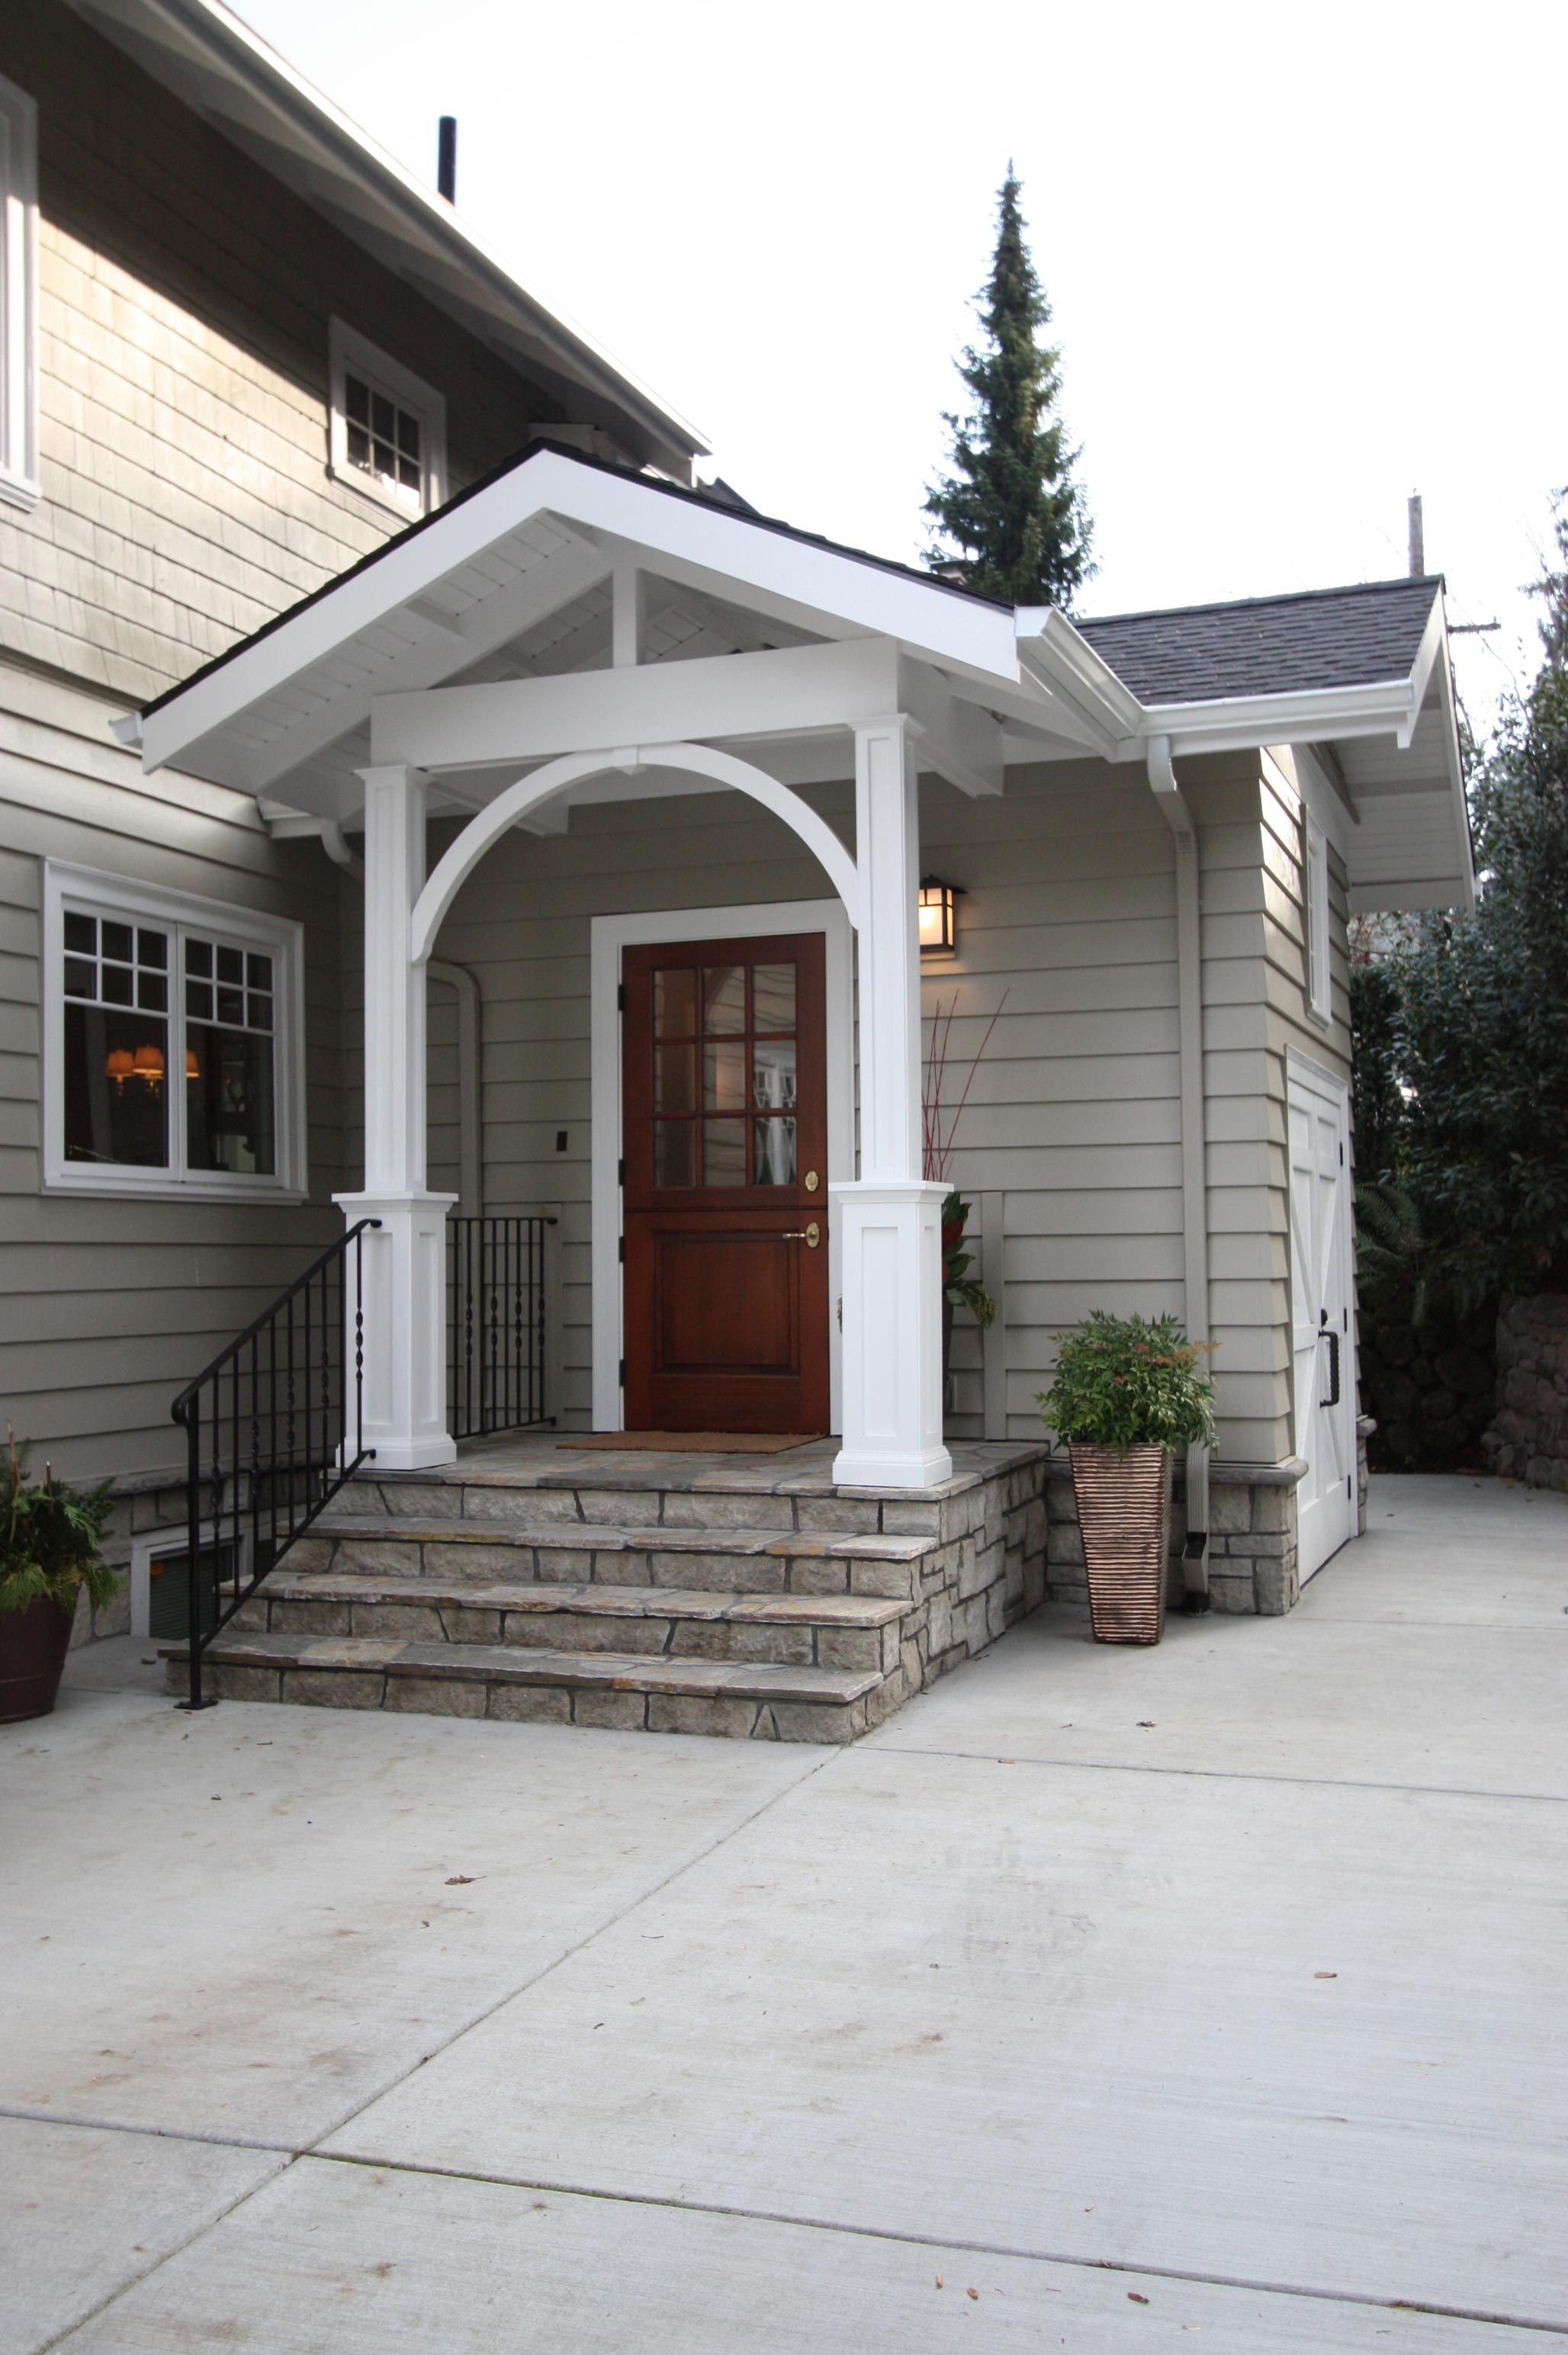 Rear Addition Home Design Ideas Pictures Remodel And Decor: House With Porch, House Entrance, House Front